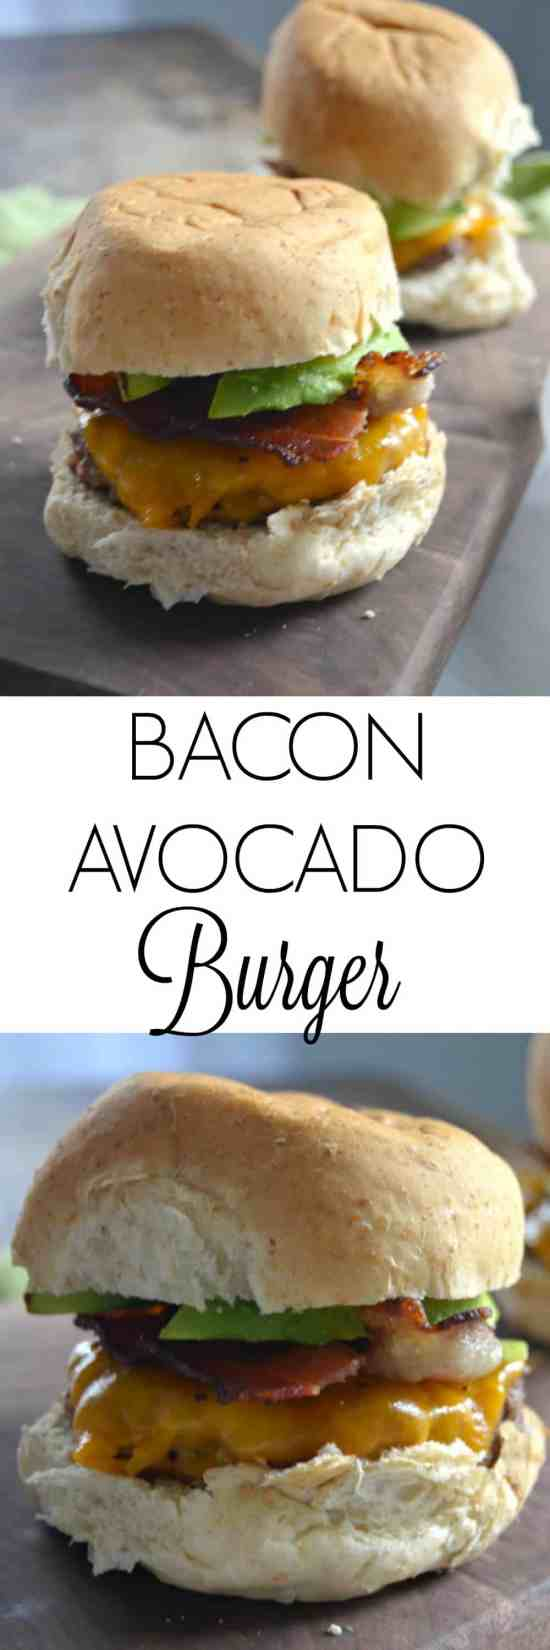 Bacon Avocado Burger - Bacon Burger - Burger Recipe Easy - Avocado Burger - Grilling Recipe